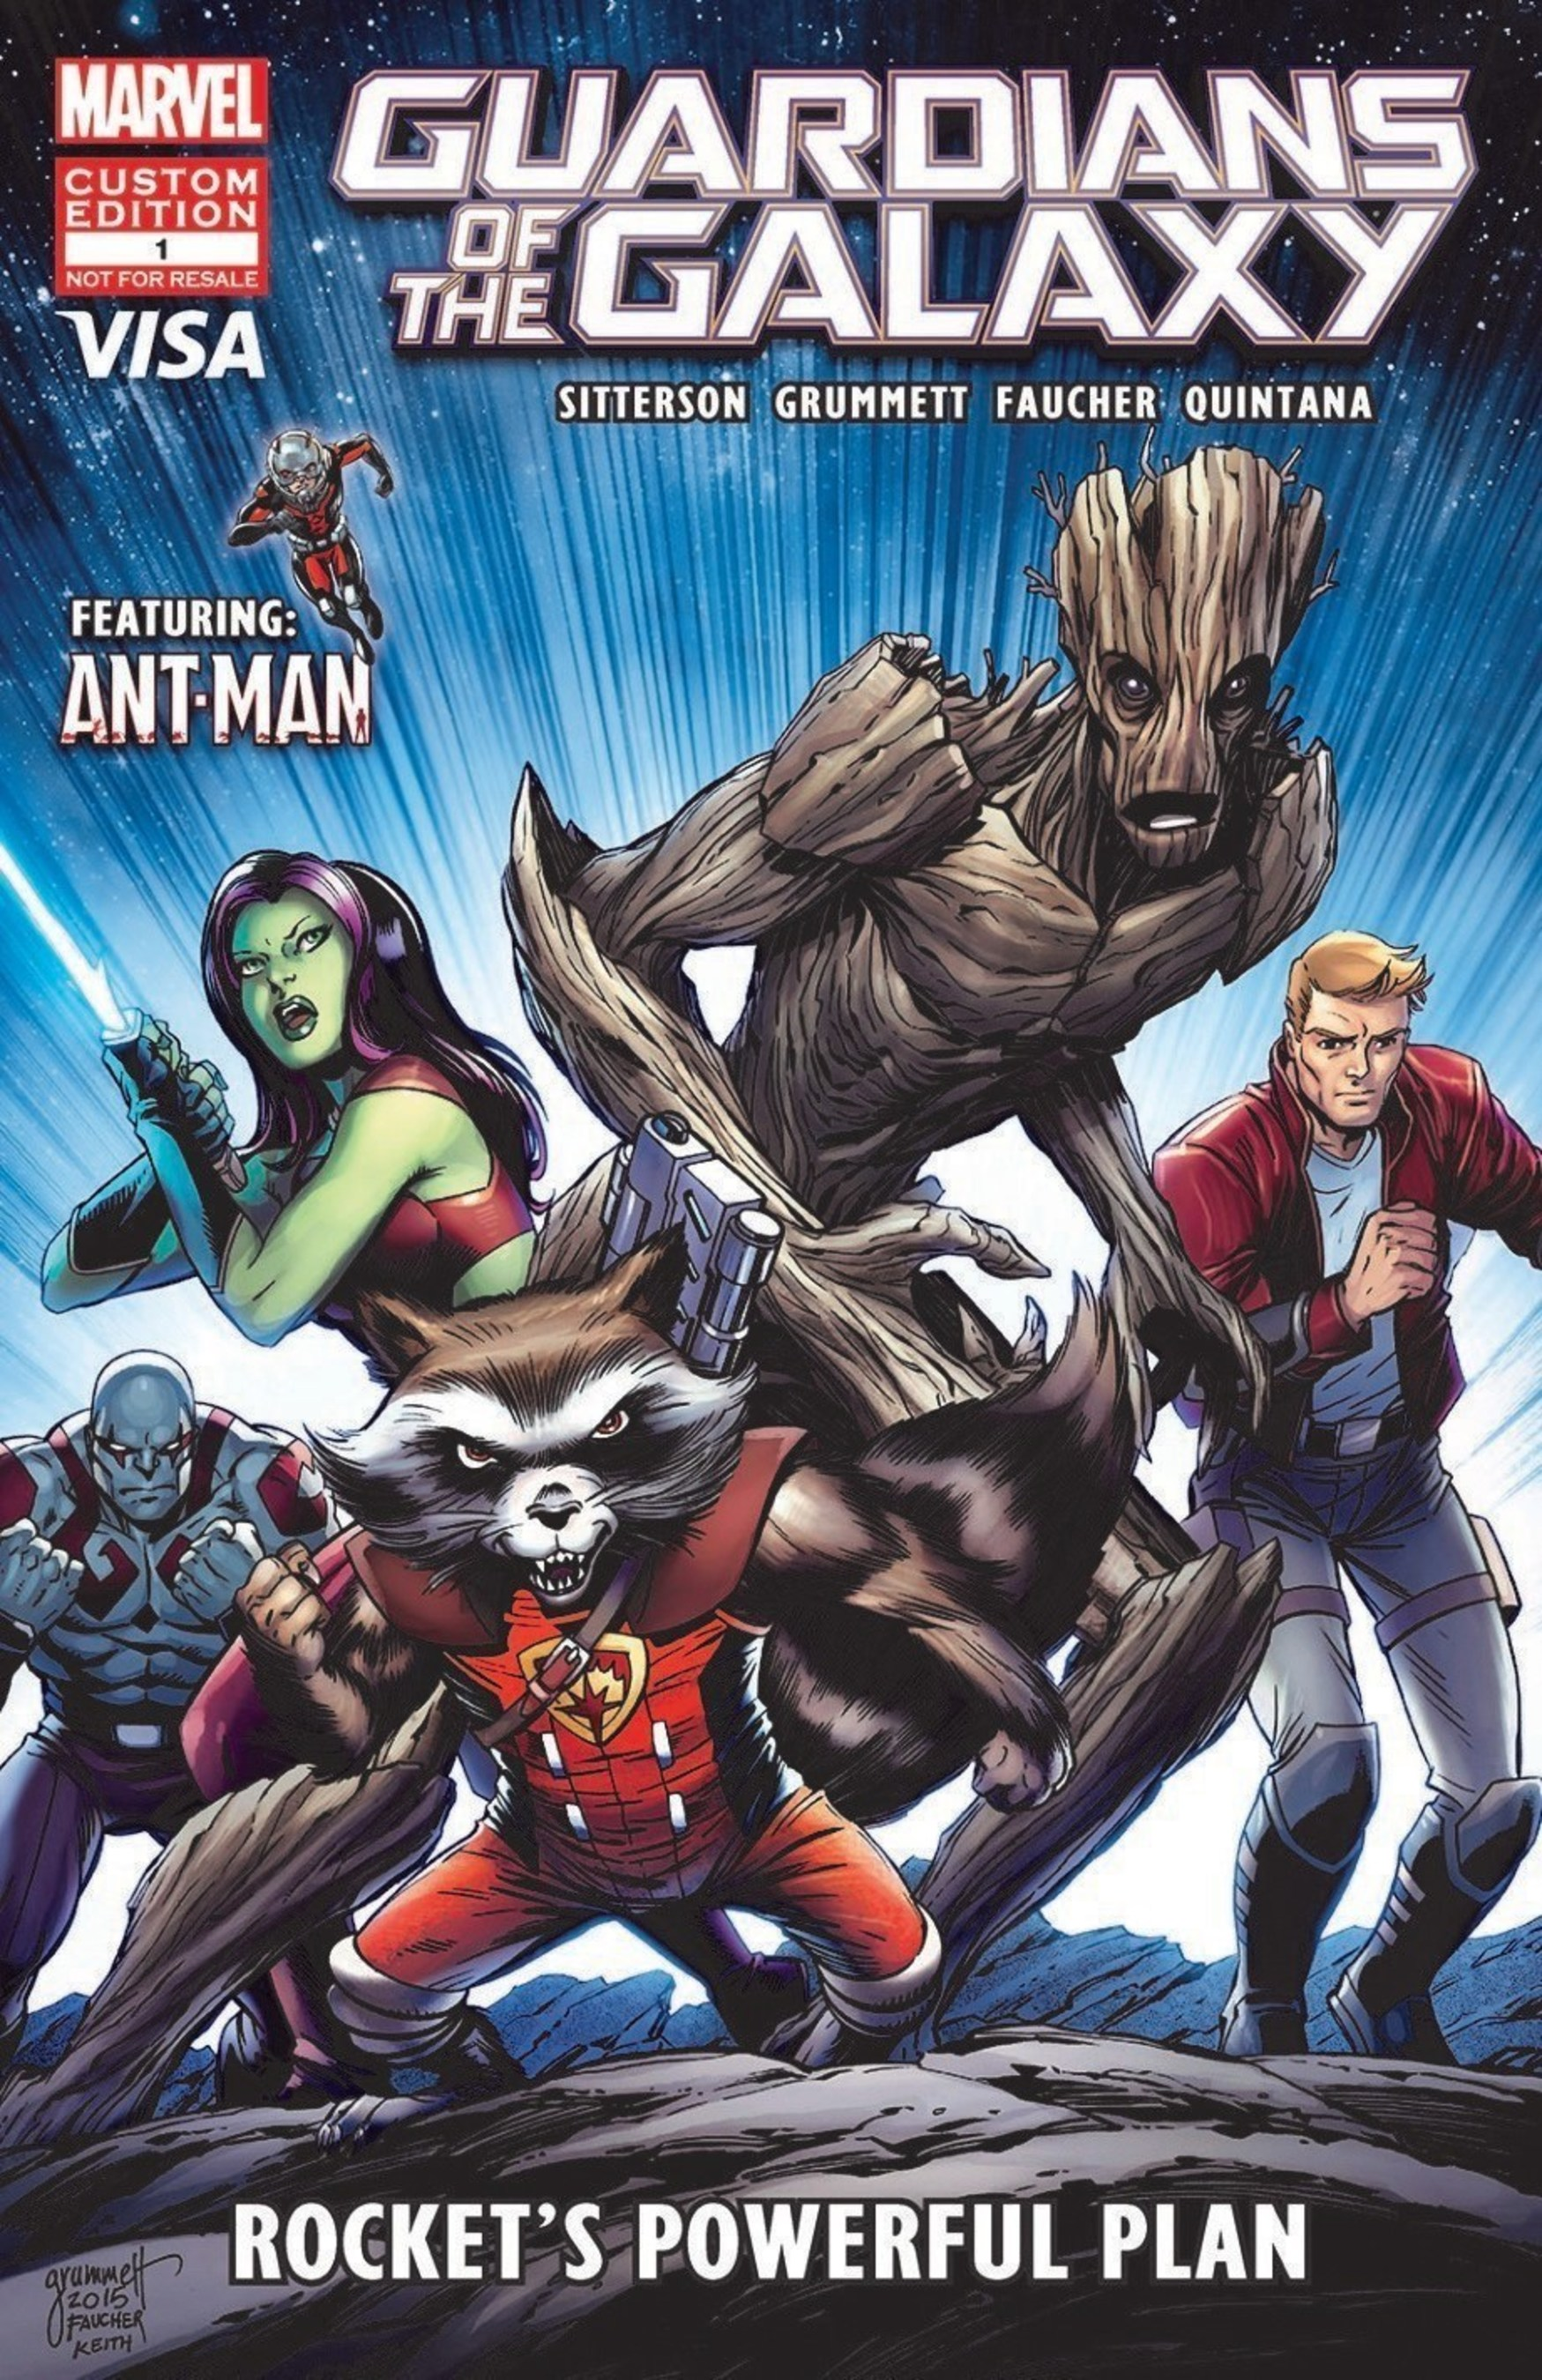 """Visa Teams Up with Marvel to Offer Financial Education through """"Guardian"""" Comic Book"""